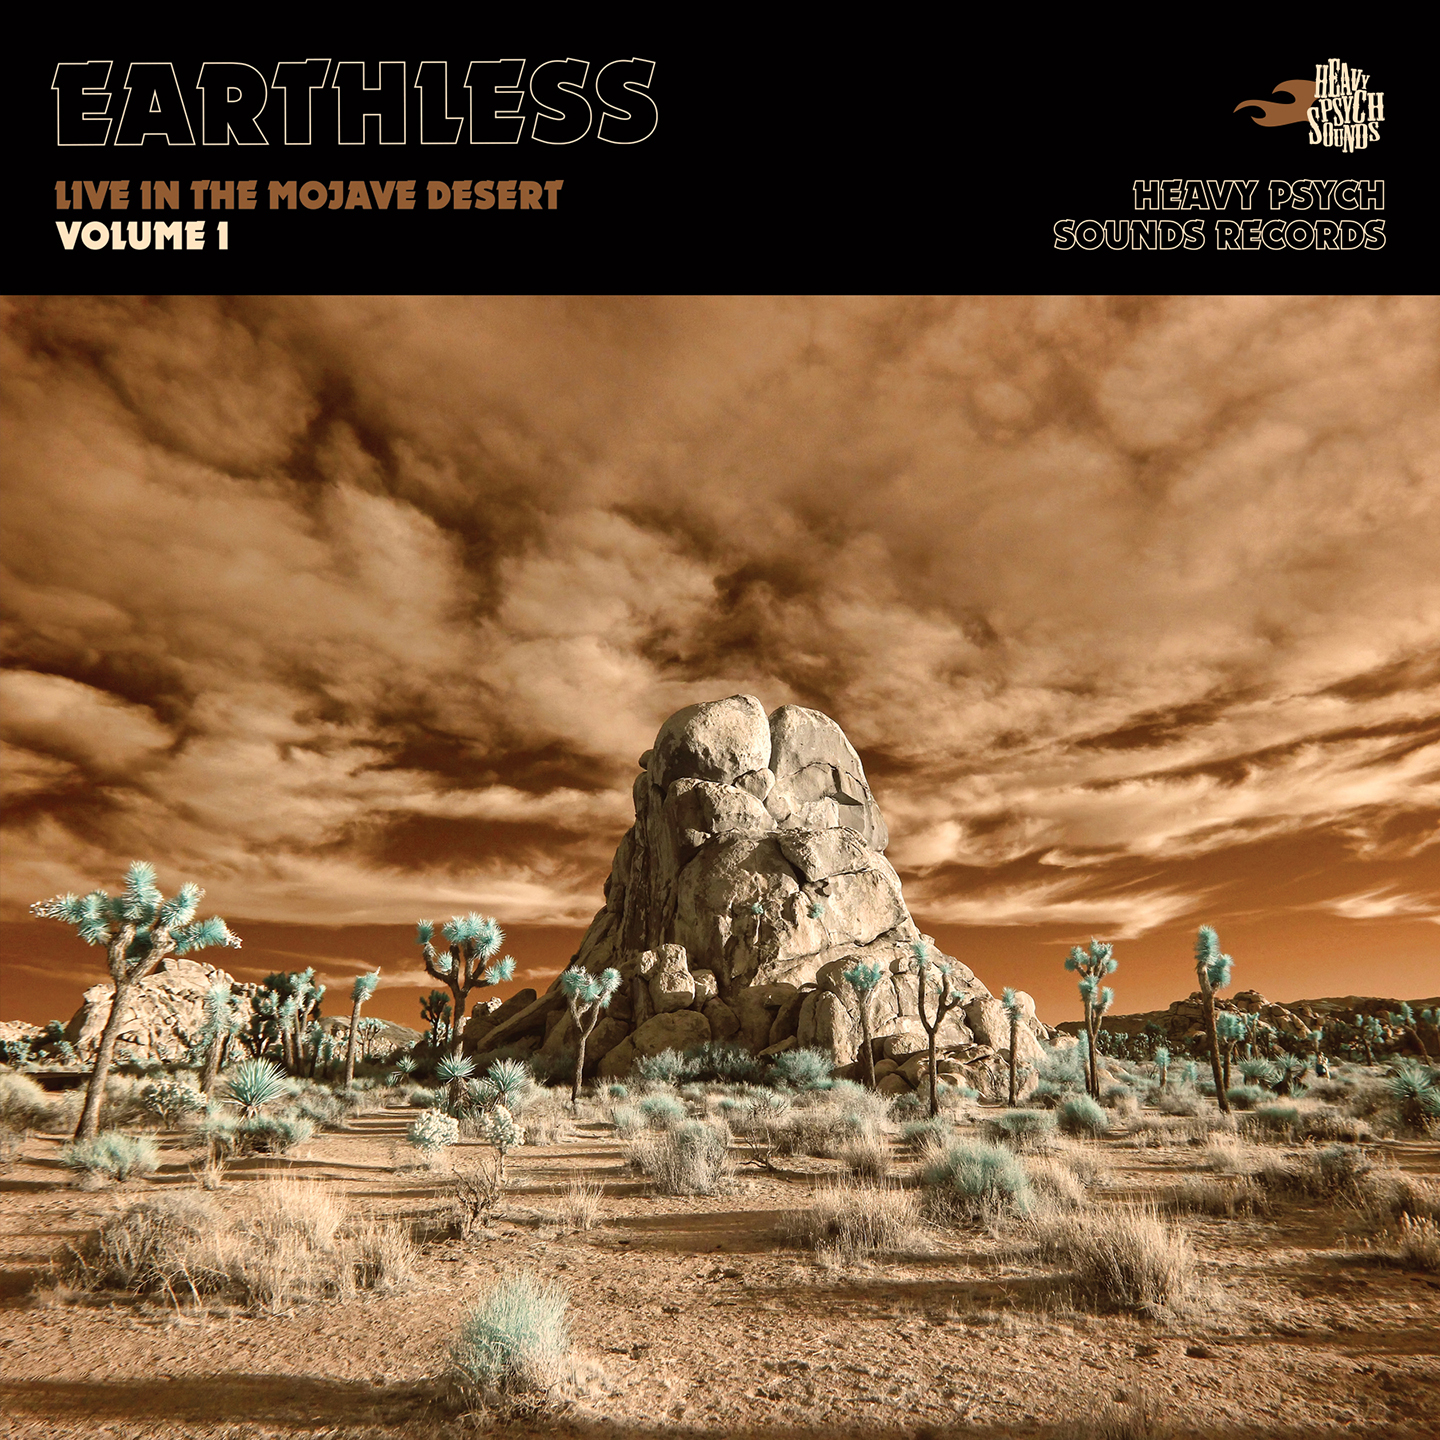 earthless live in the mojave desert